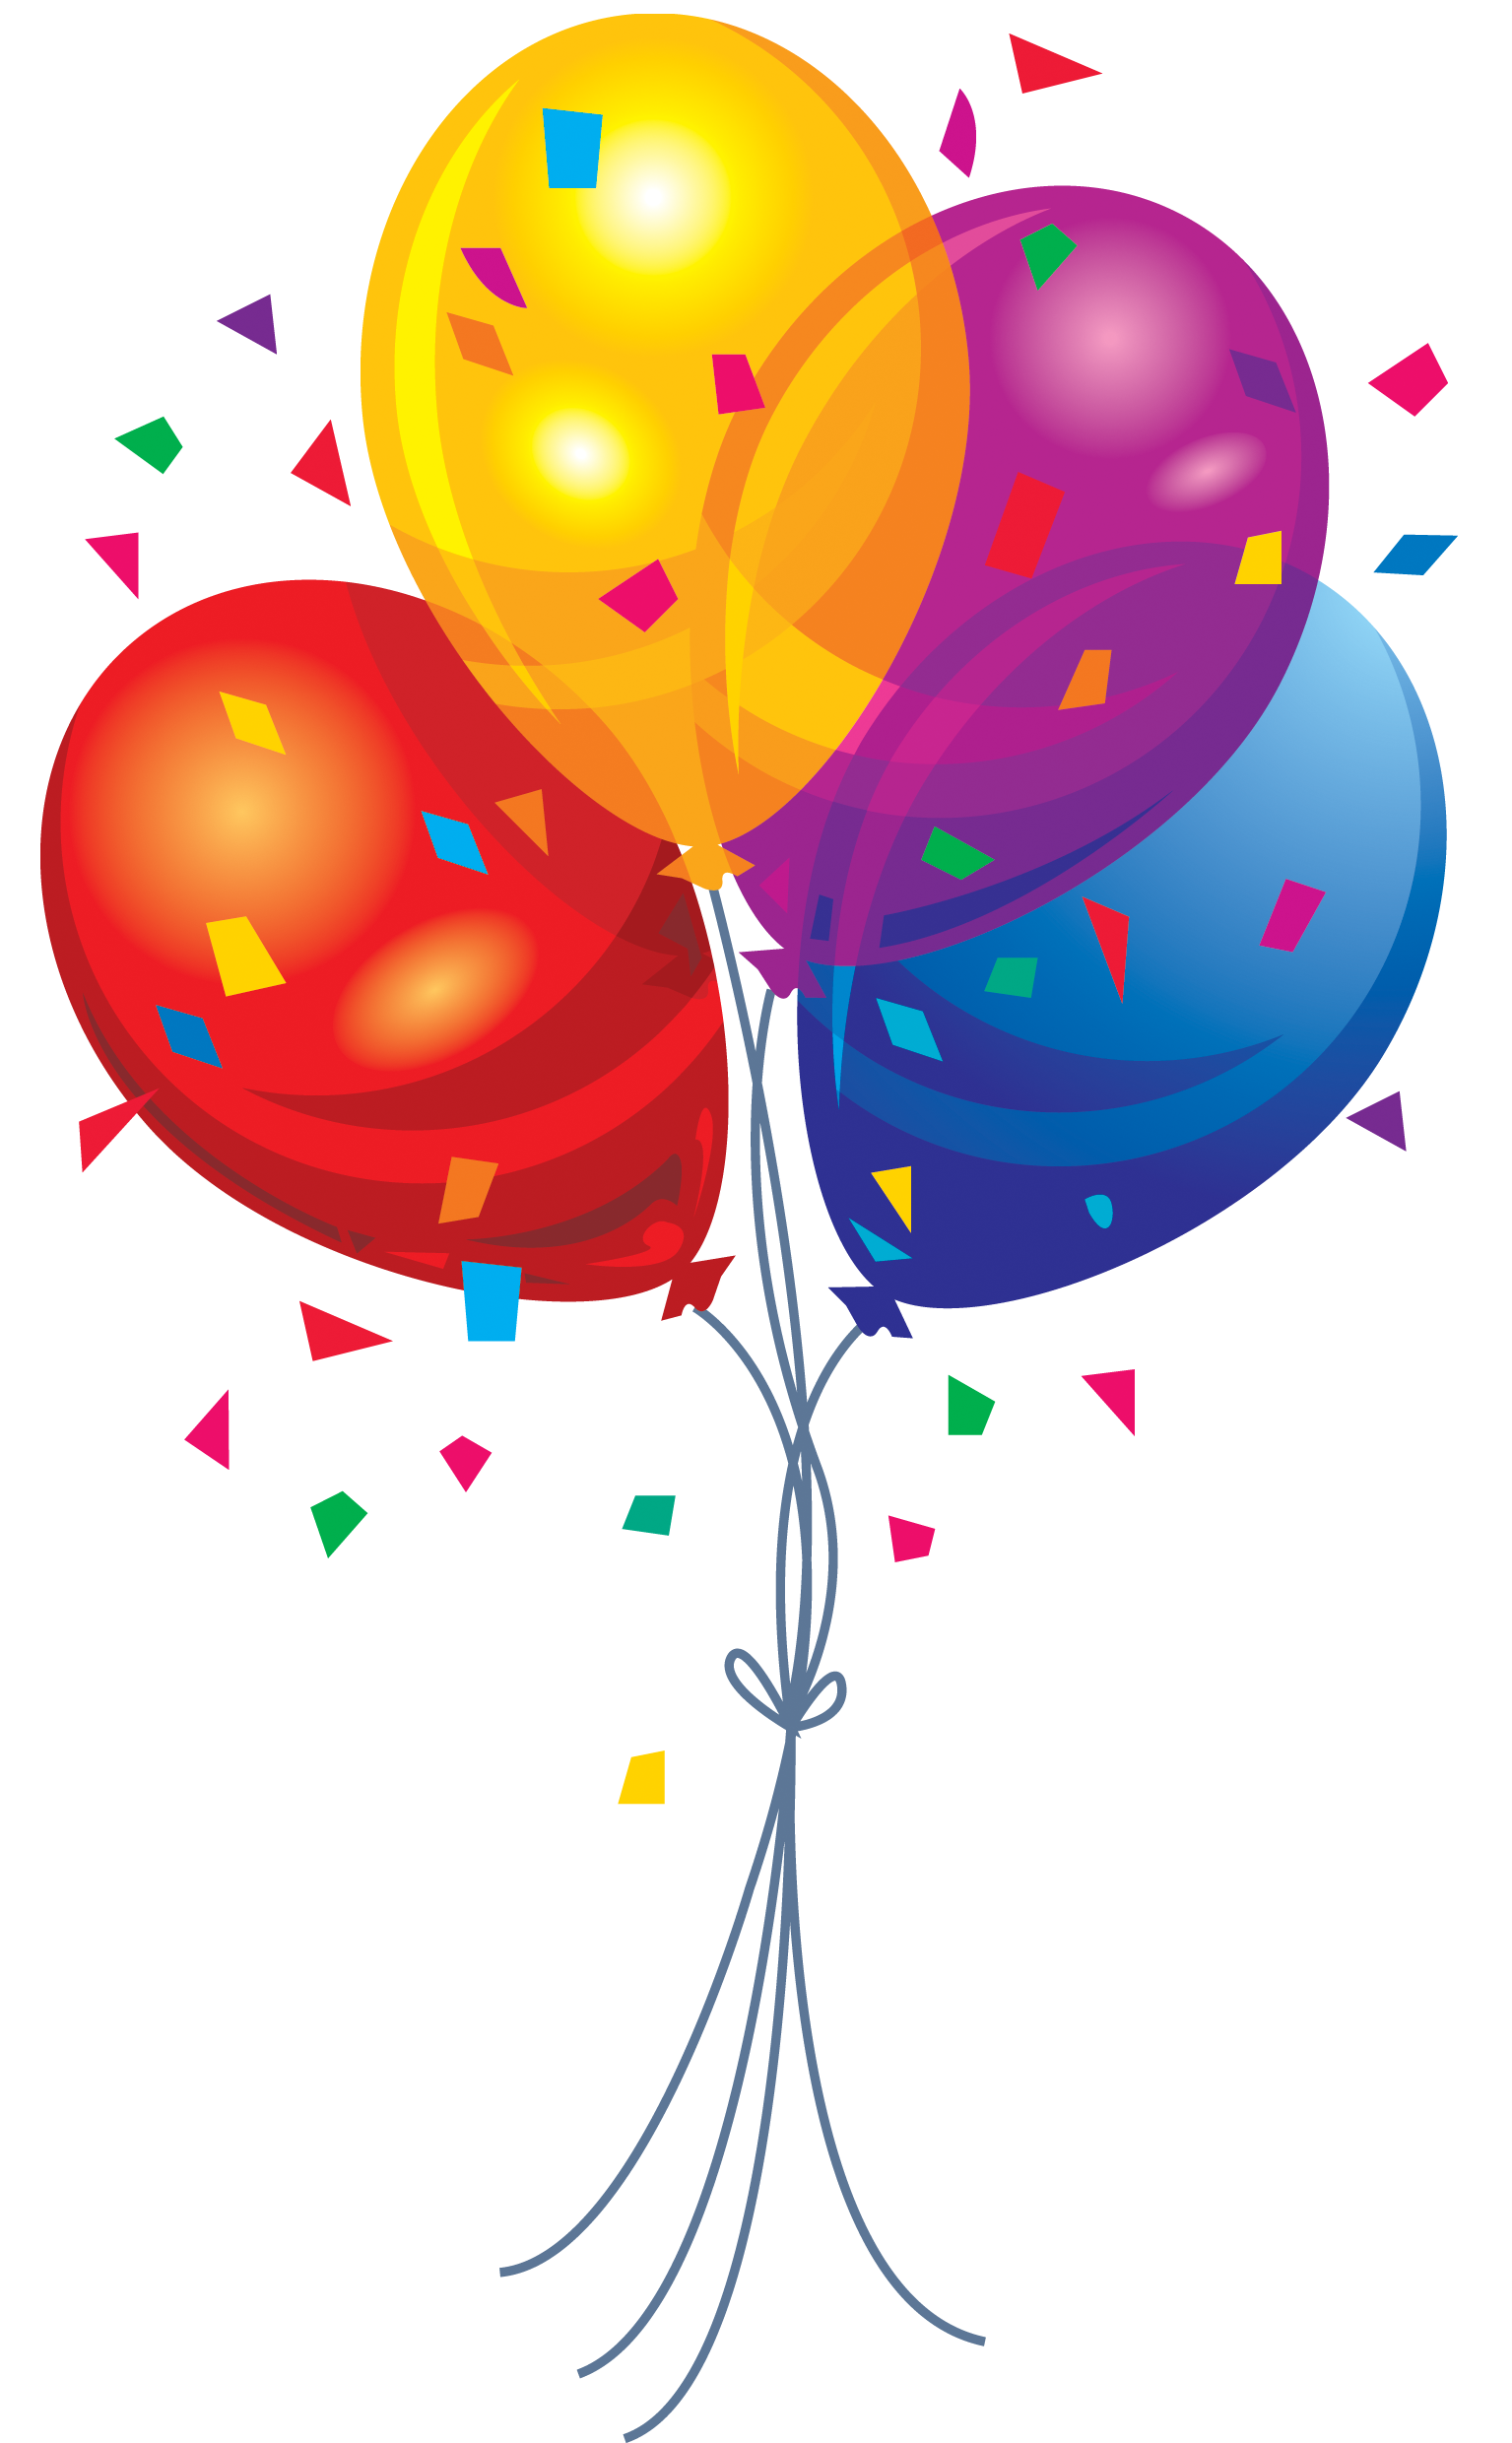 balloons png balloon png transparent balloon images pluspng #9338